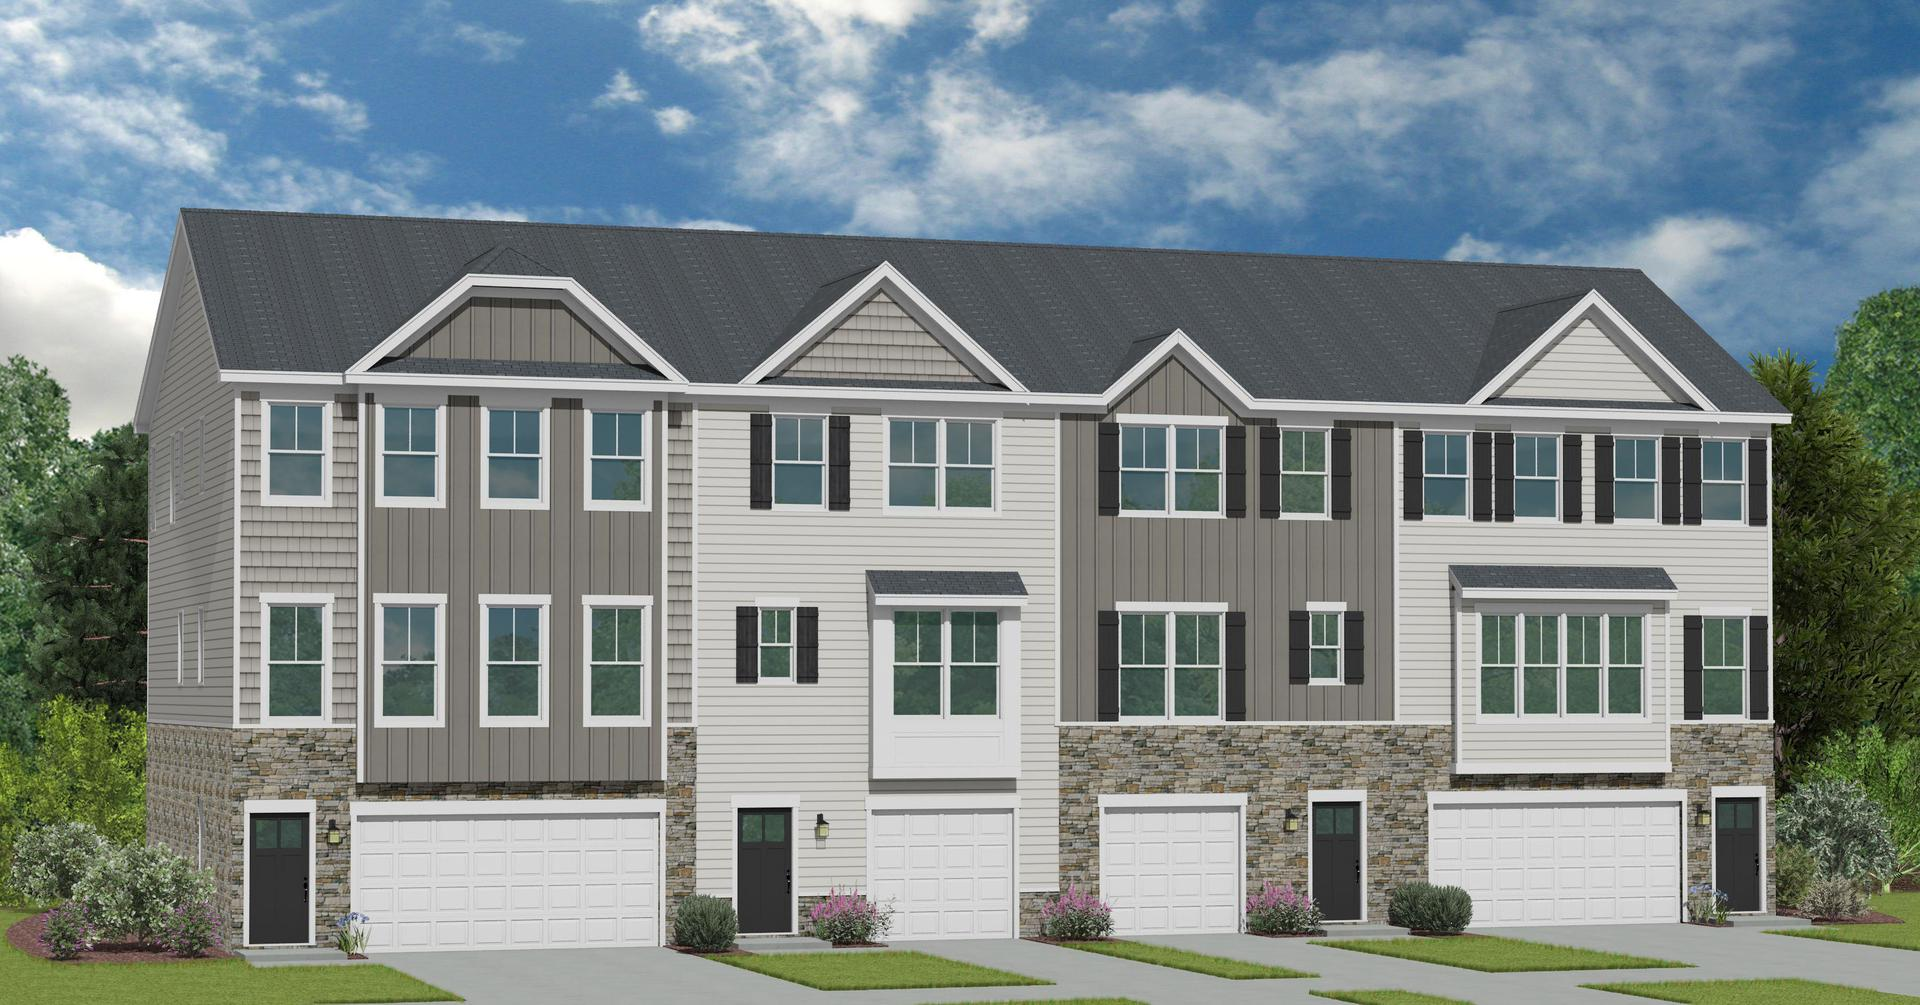 The Parc Townes at Wendell New Homes in Wendell NC